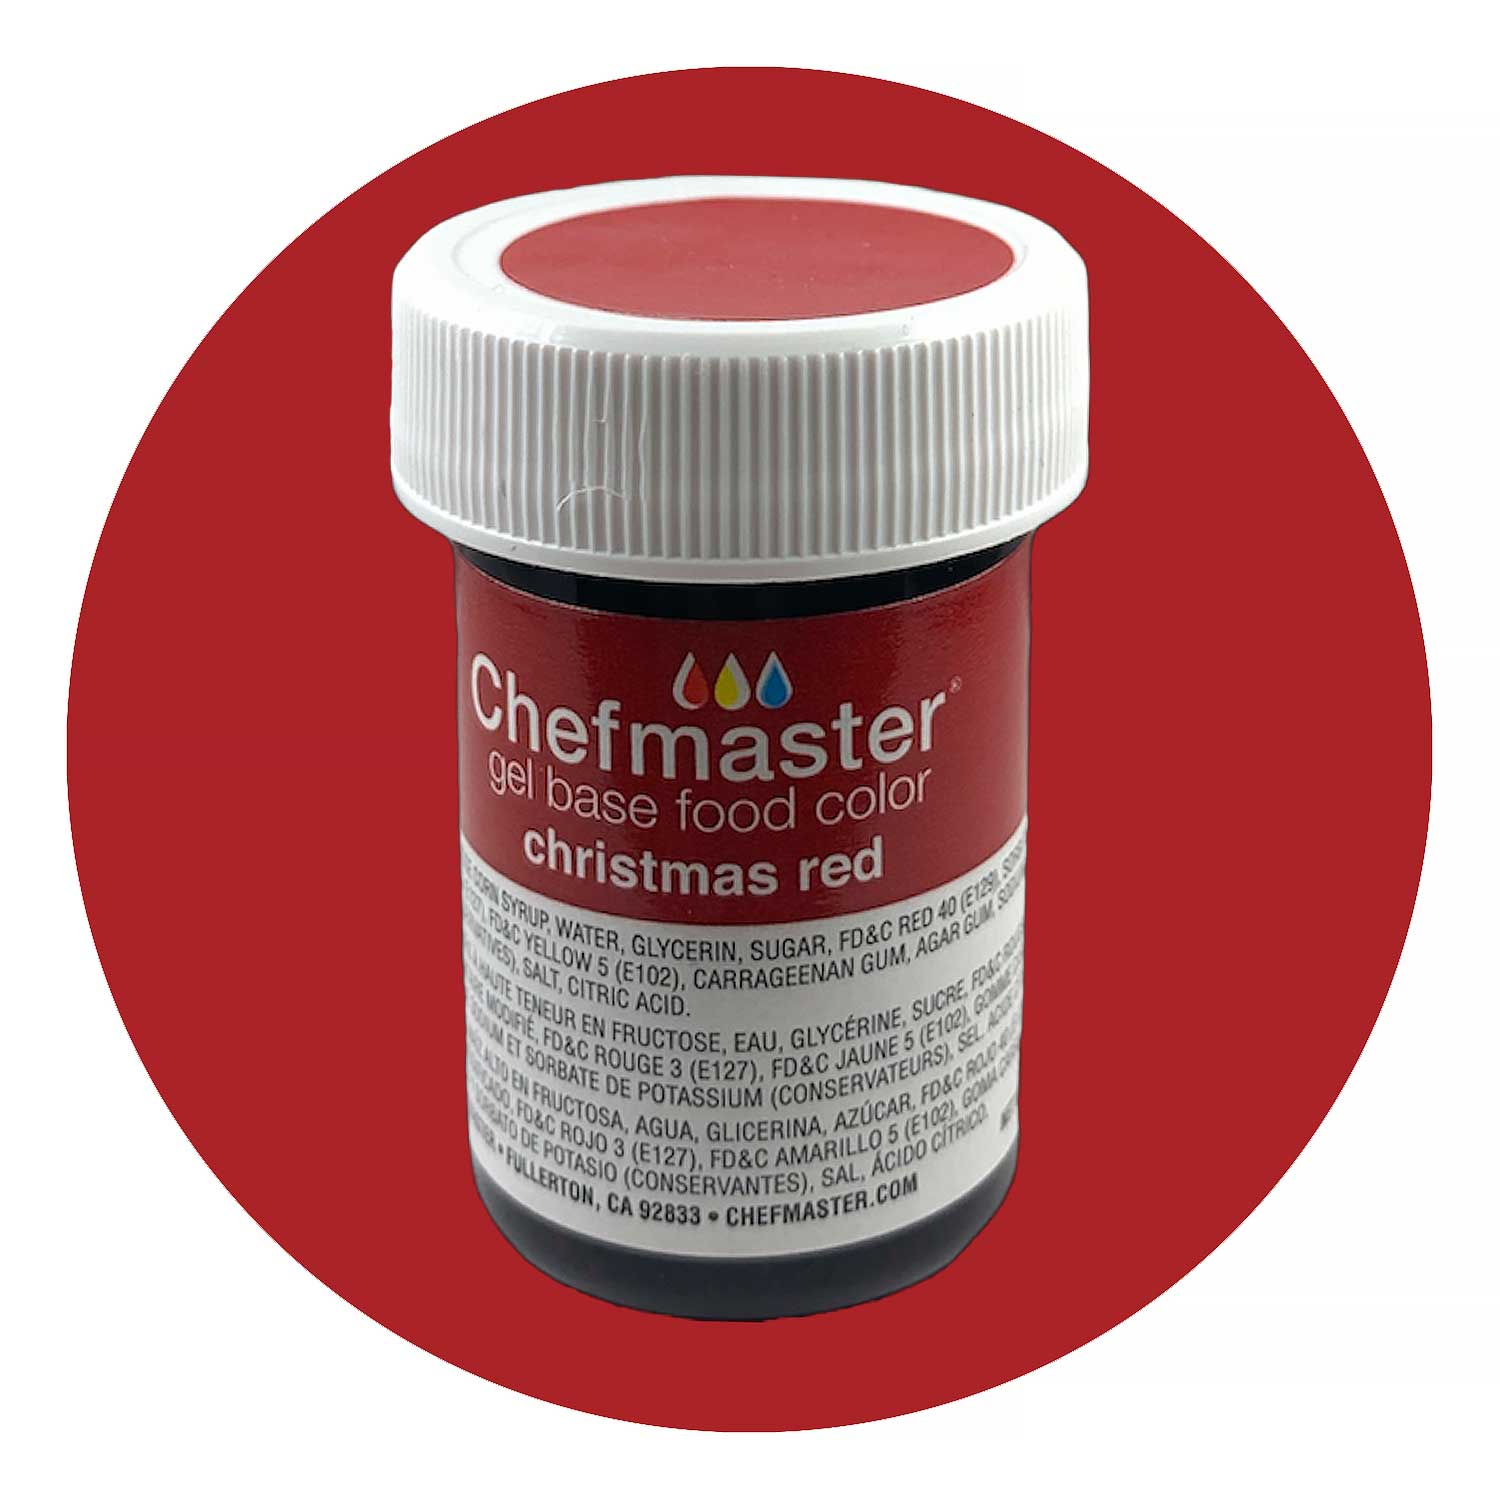 Christmas Red Chefmaster Food Color Gel (Old Item # 41-2381)